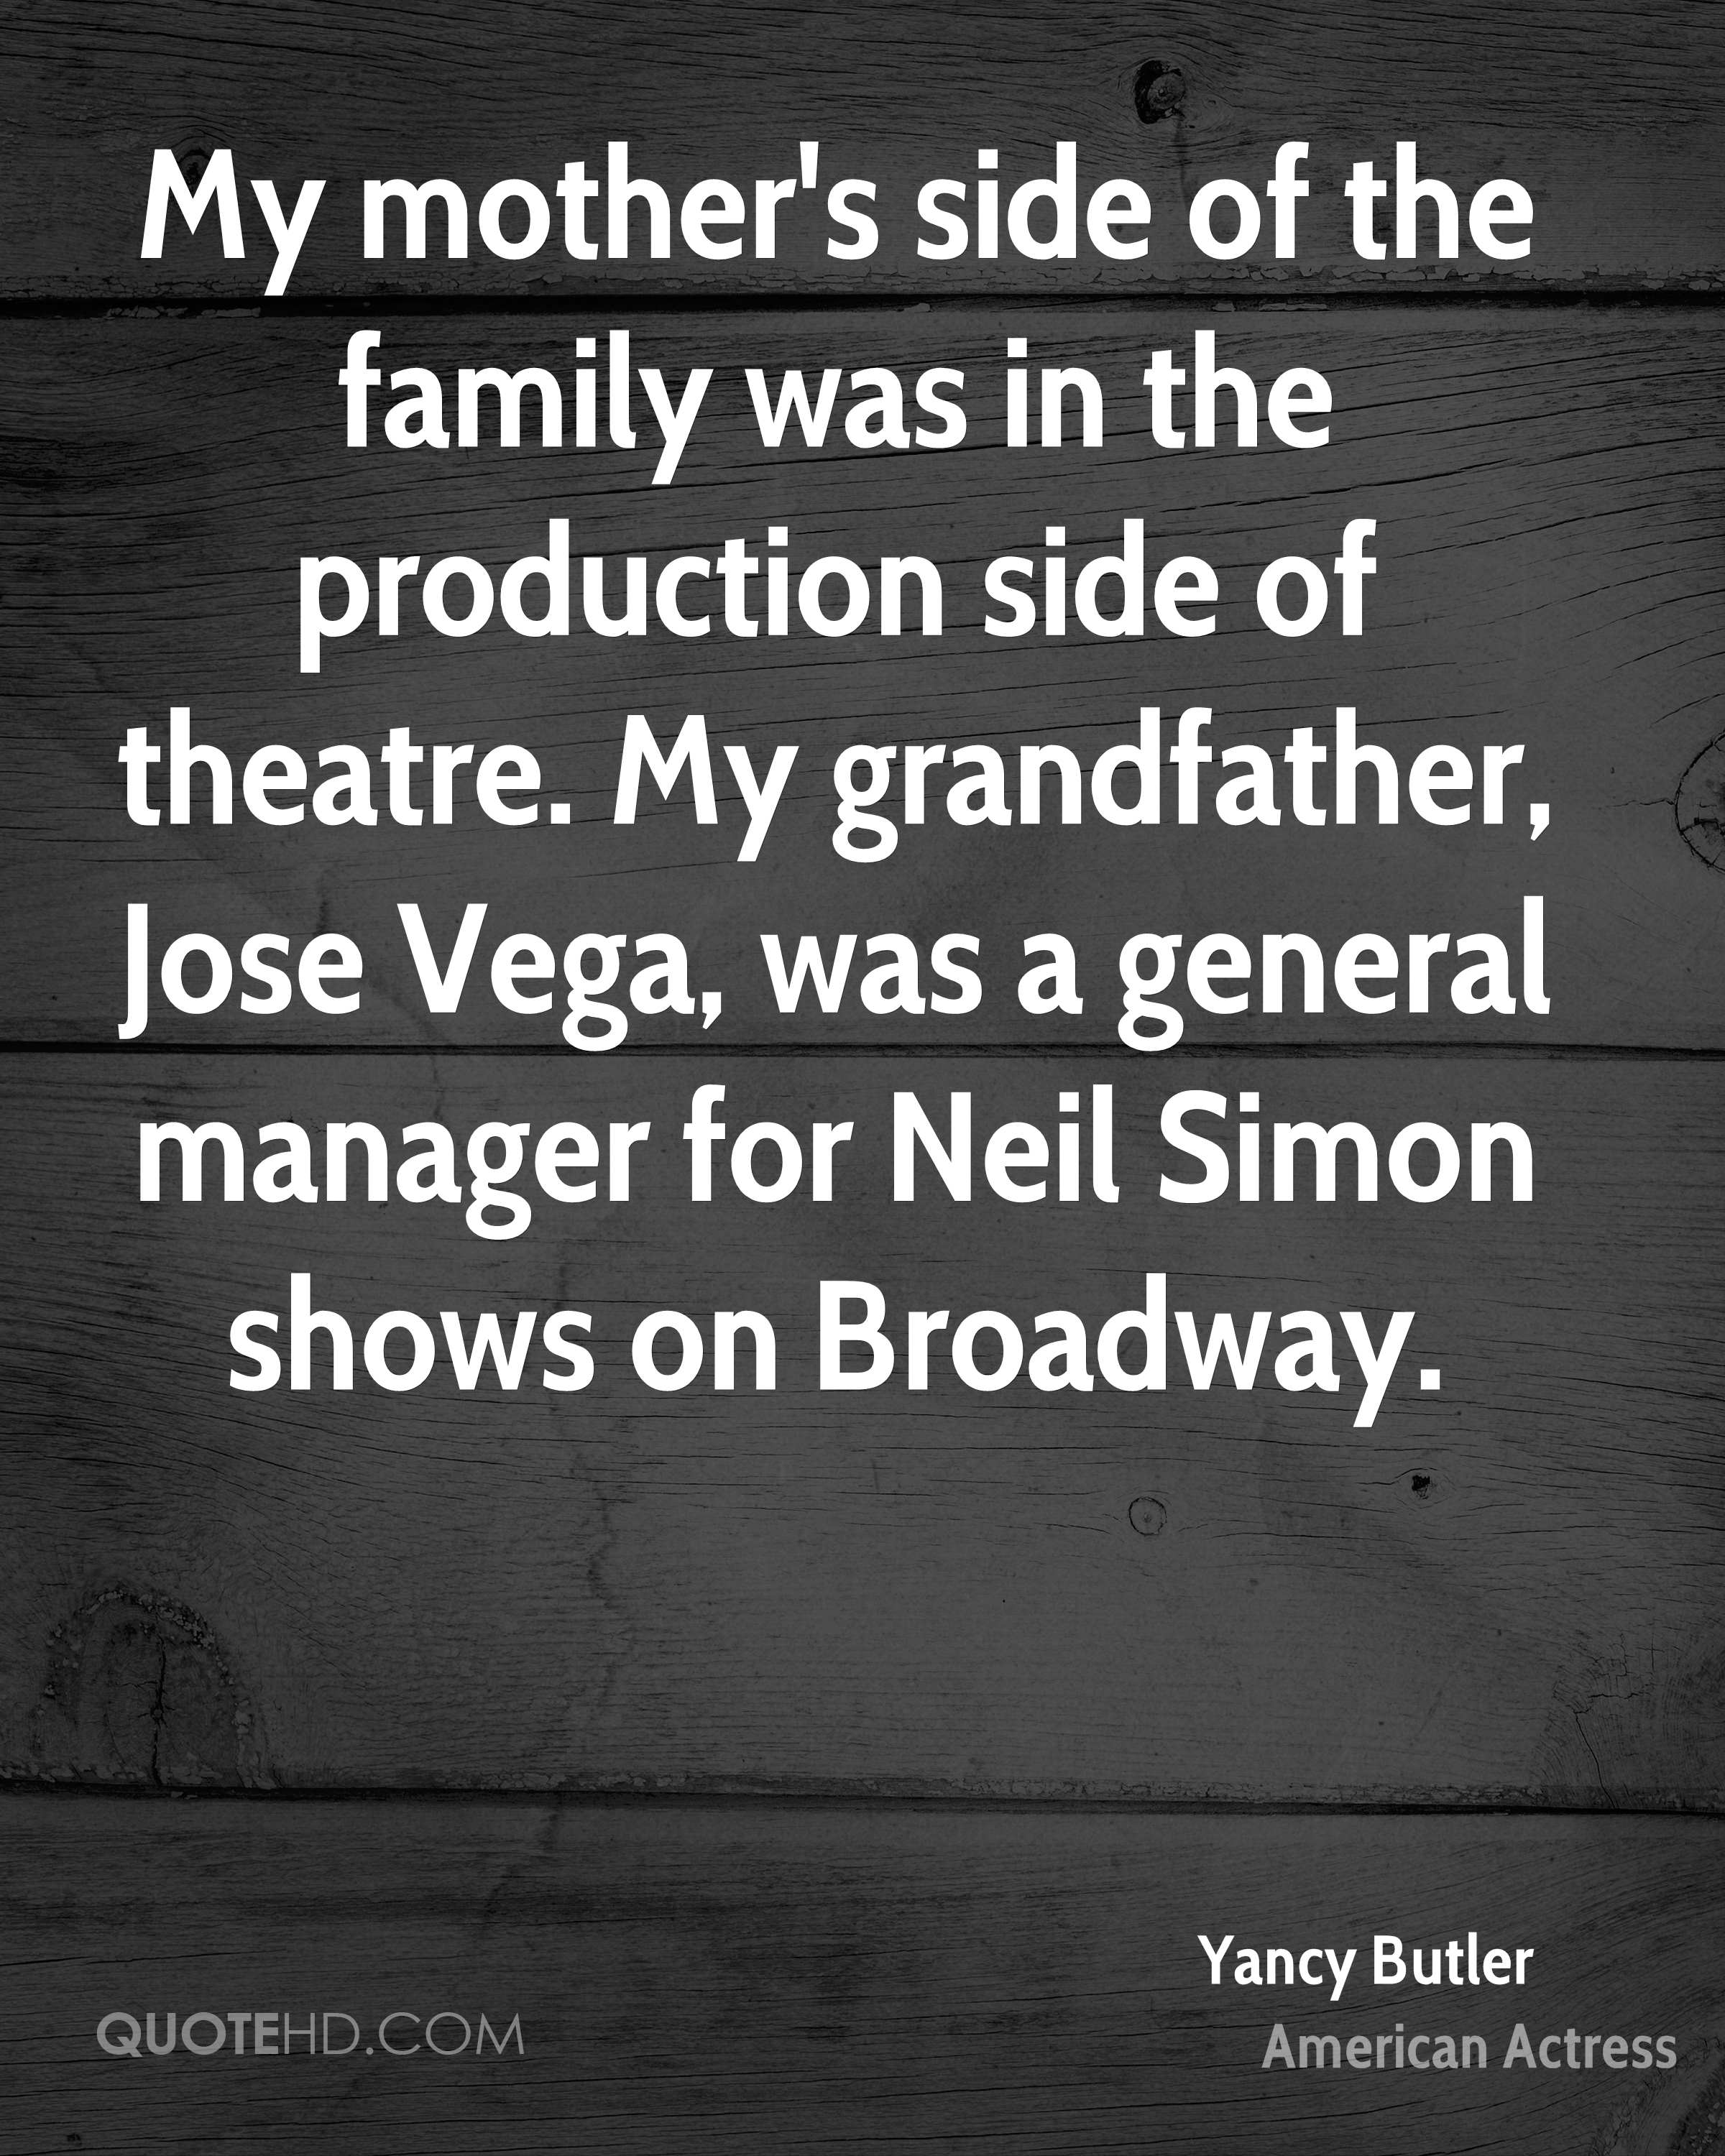 My mother's side of the family was in the production side of theatre. My grandfather, Jose Vega, was a general manager for Neil Simon shows on Broadway.